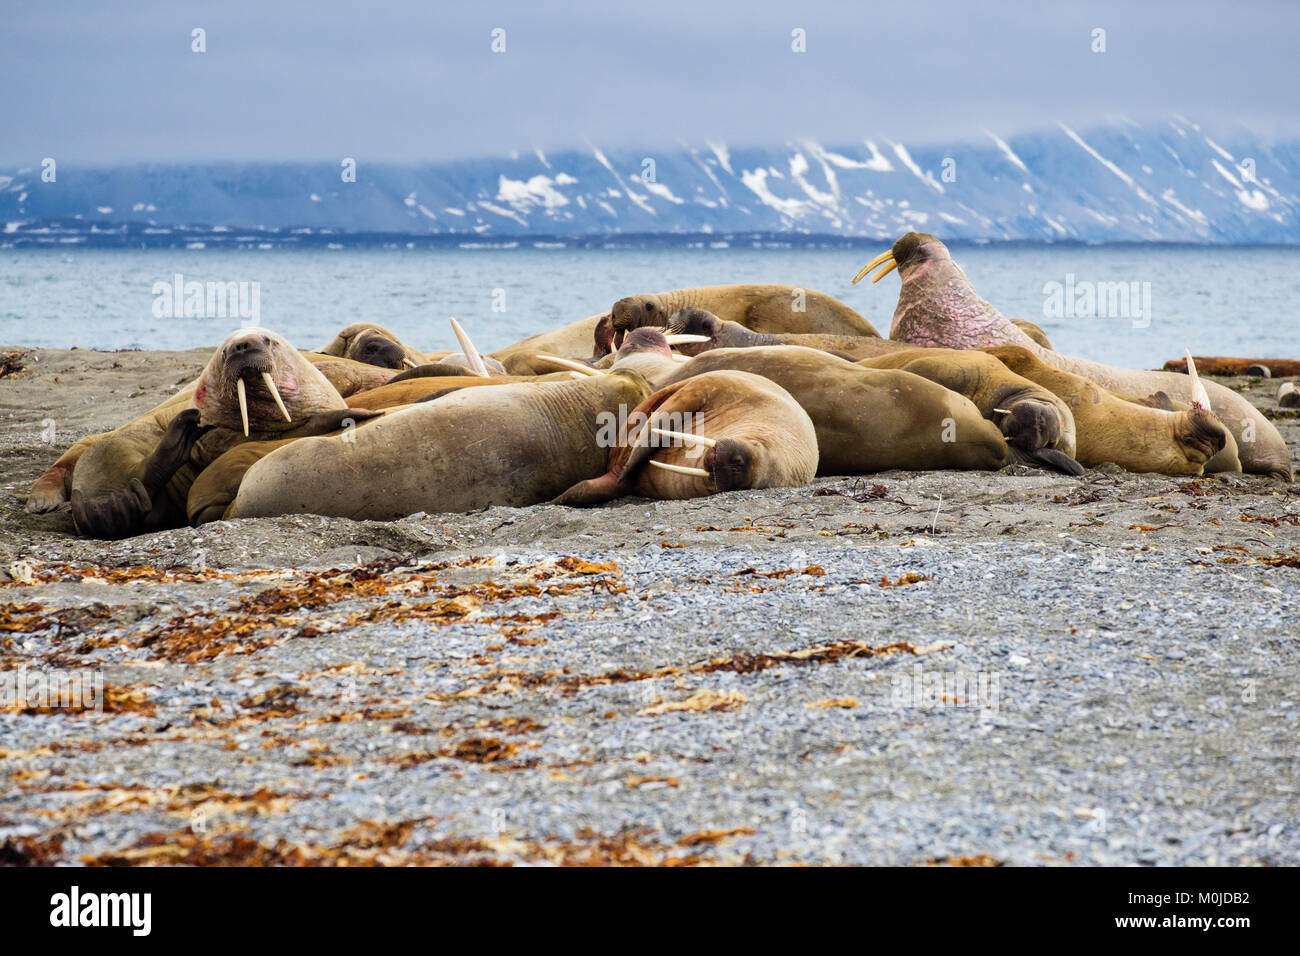 Group of Walruses (Odobenus rosmarus) adults hauled out to rest on dry land on Arctic coast in summer 2017. Spitsbergen - Stock Image